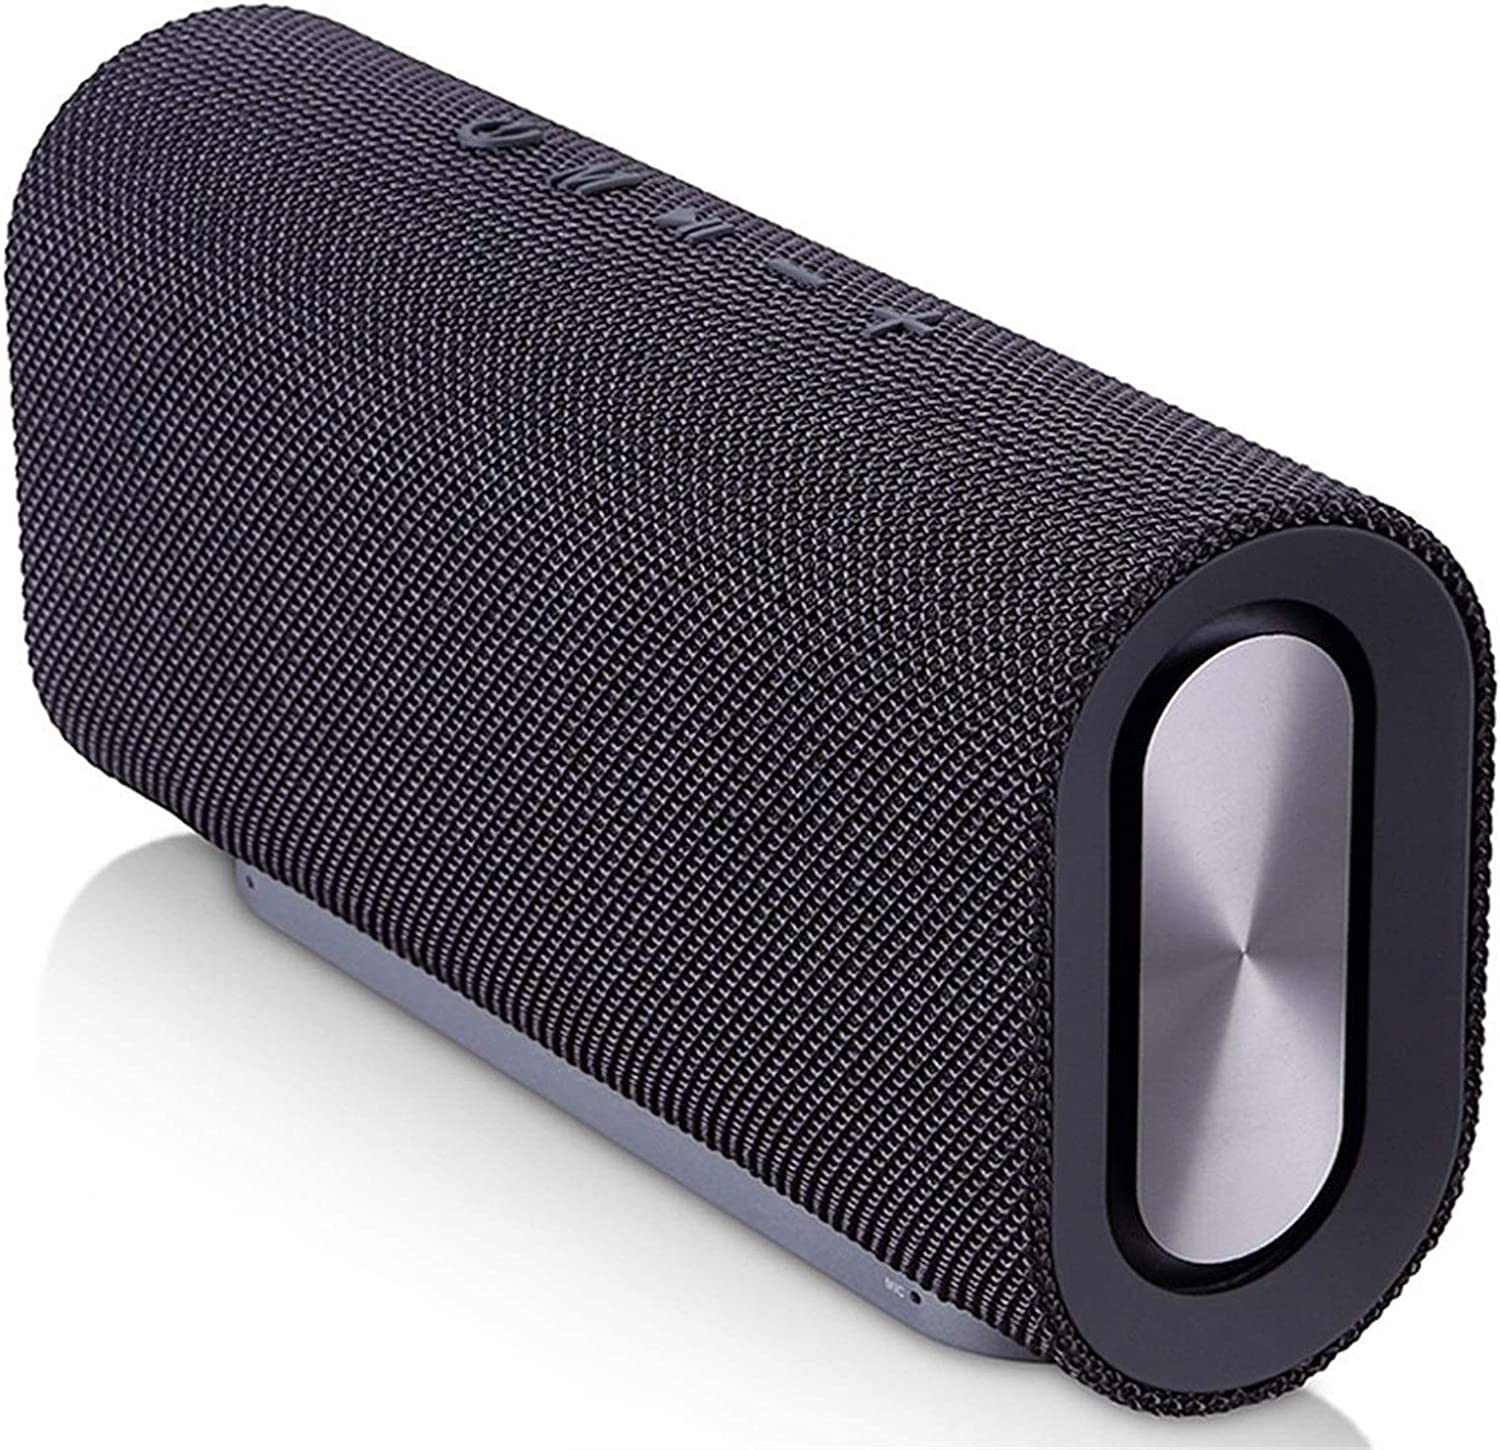 DJDLLZY Portable Low price Bluetooth Speakers with Sound Discount mail order Blueto Stereo 12W